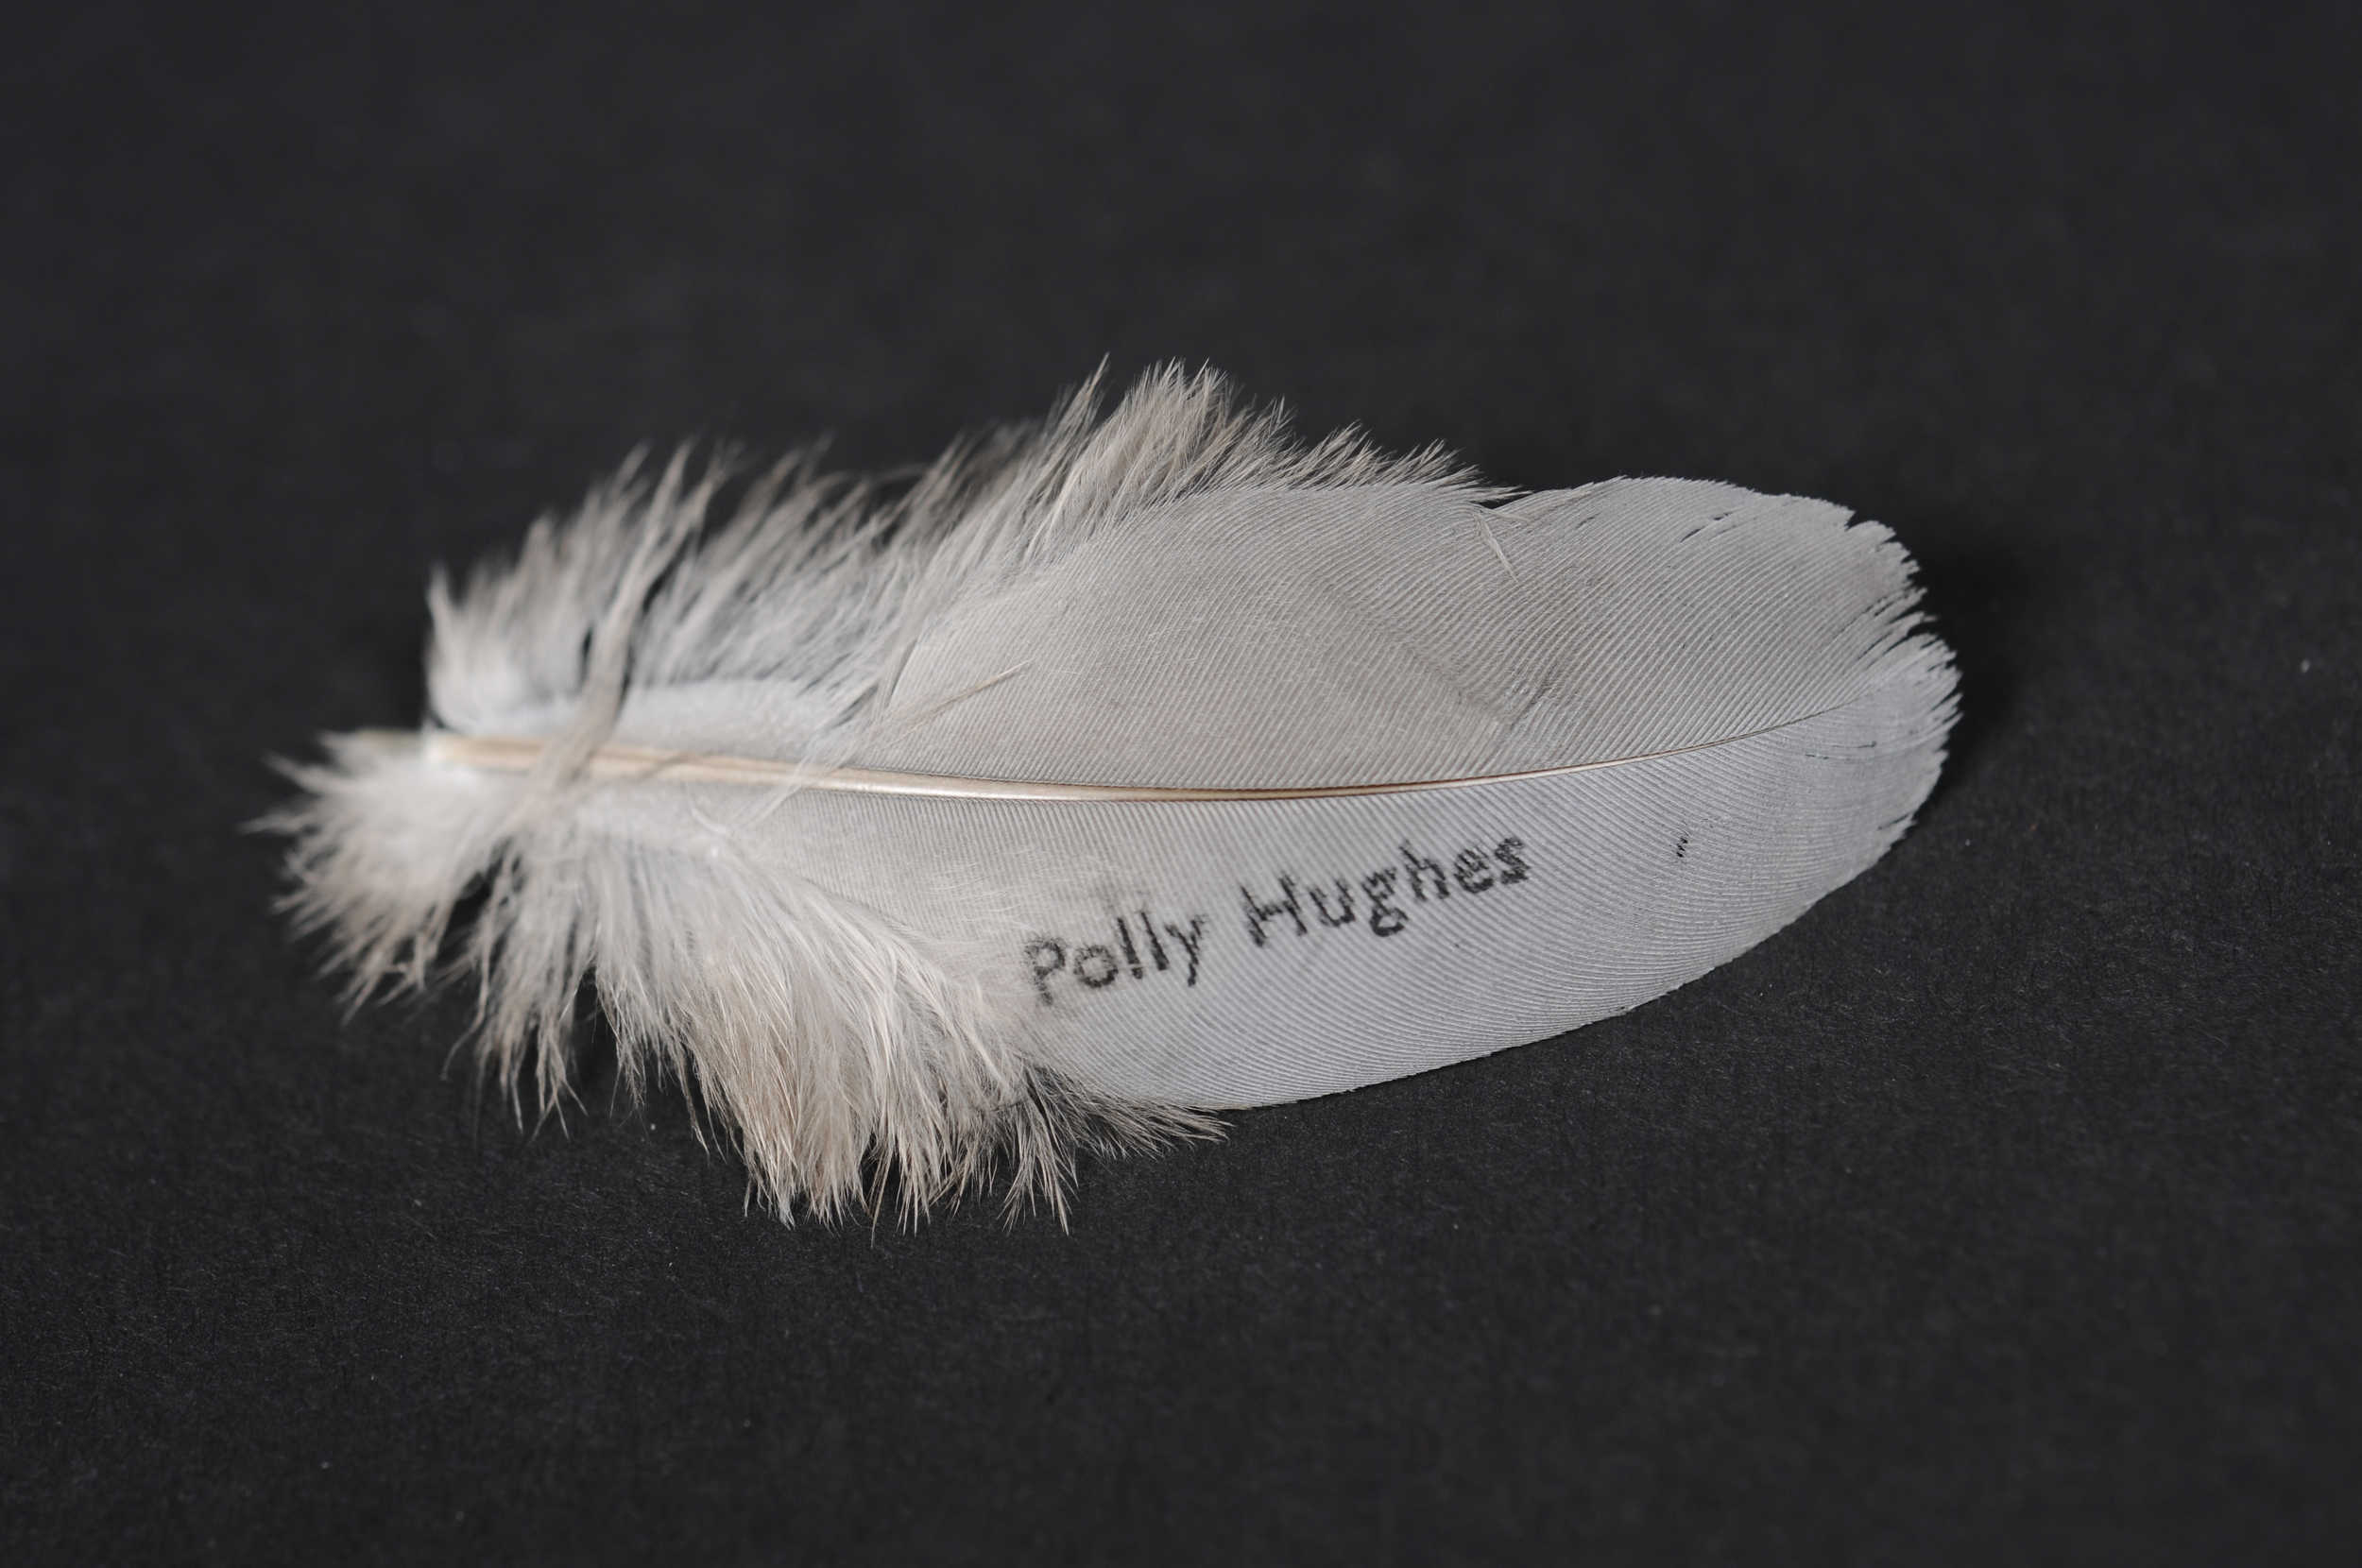 Polly Hughes feather.jpg